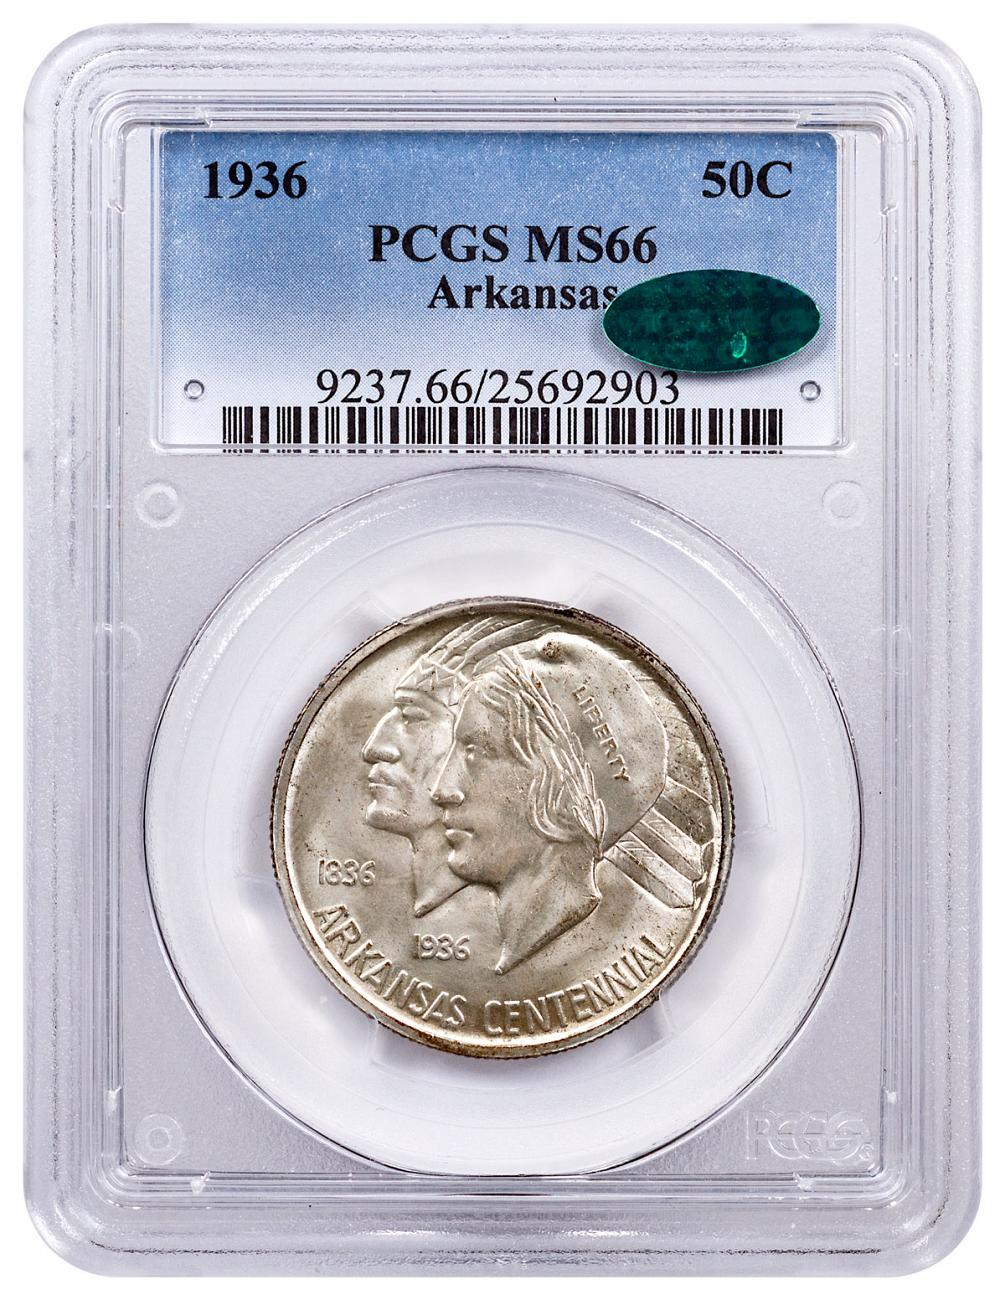 1936 Arkansas Centennial Commemorative Silver Half Dollar Coin PCGS MS66